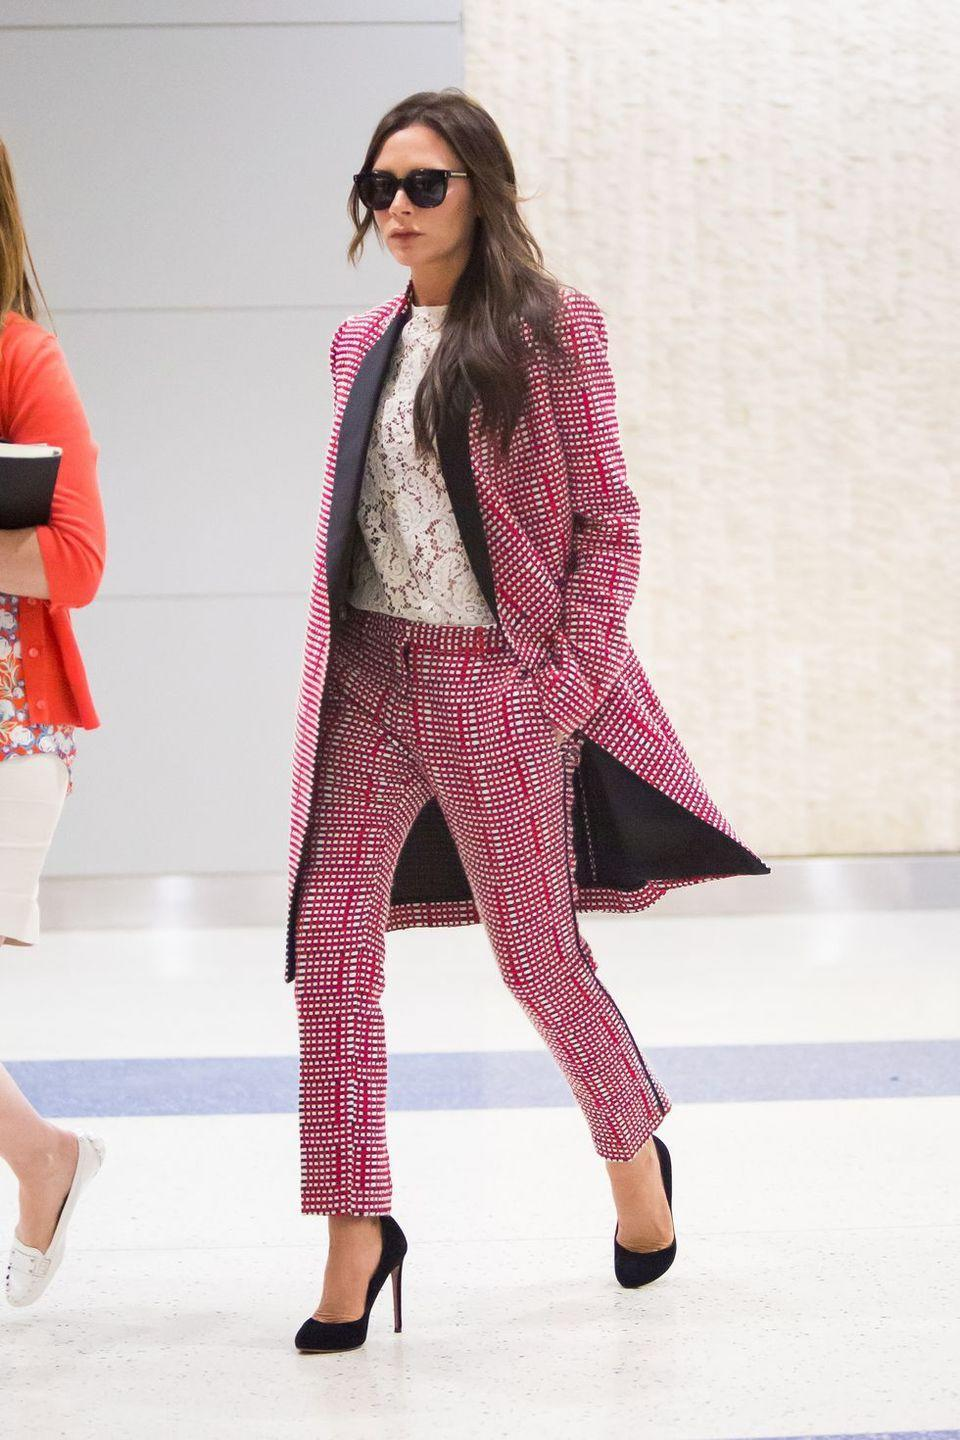 <p><strong>Victoria Beckham, 2015: </strong>Don't get me wrong, Victoria looks <em>great </em>here. But a matching two piece suit and heels to the airport feels like she's doing <em>the most</em>.</p>